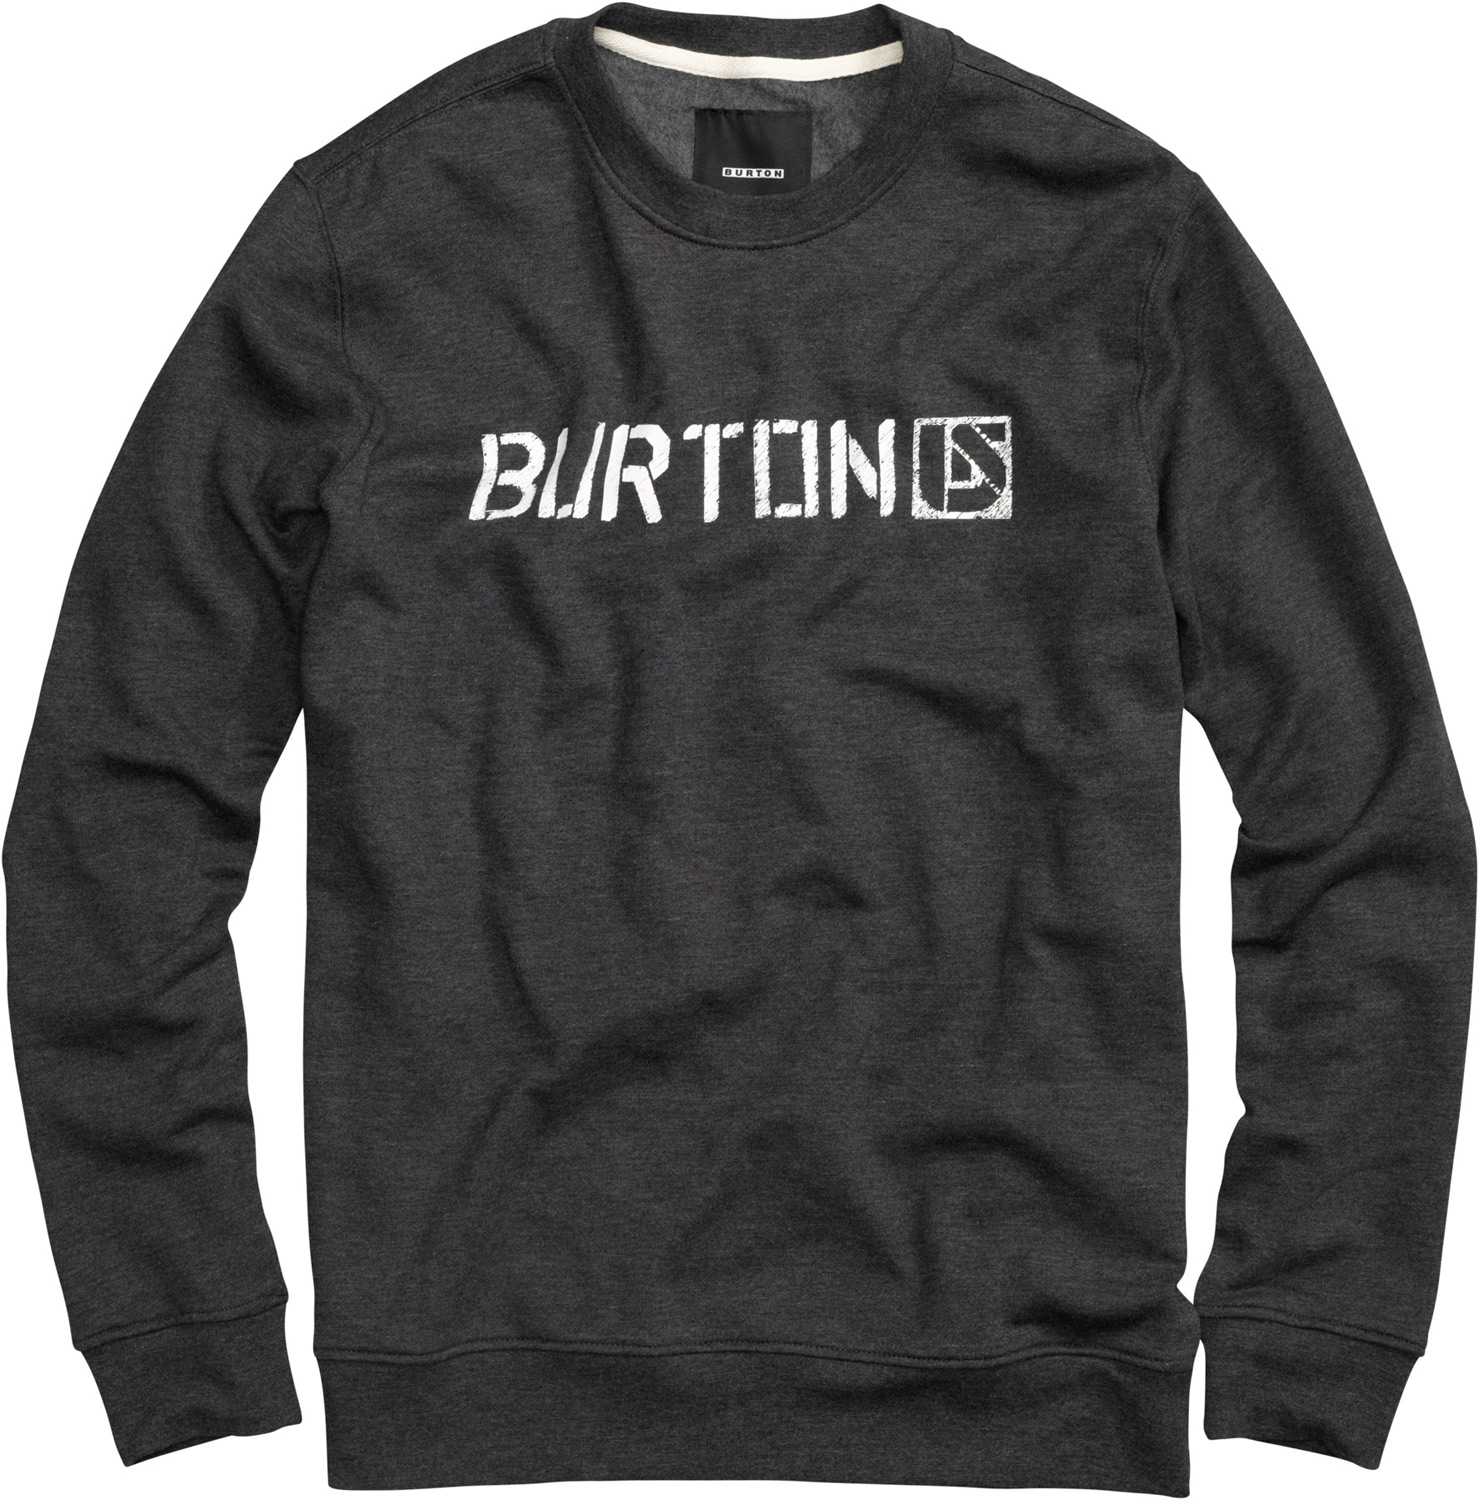 Snowboard Key Features of the Burton Sub Zero Crew Sweatshirt: 80% Cotton, 20% Polyester, 300G Fleece Screen Print on Chest Regular Fit - $47.00